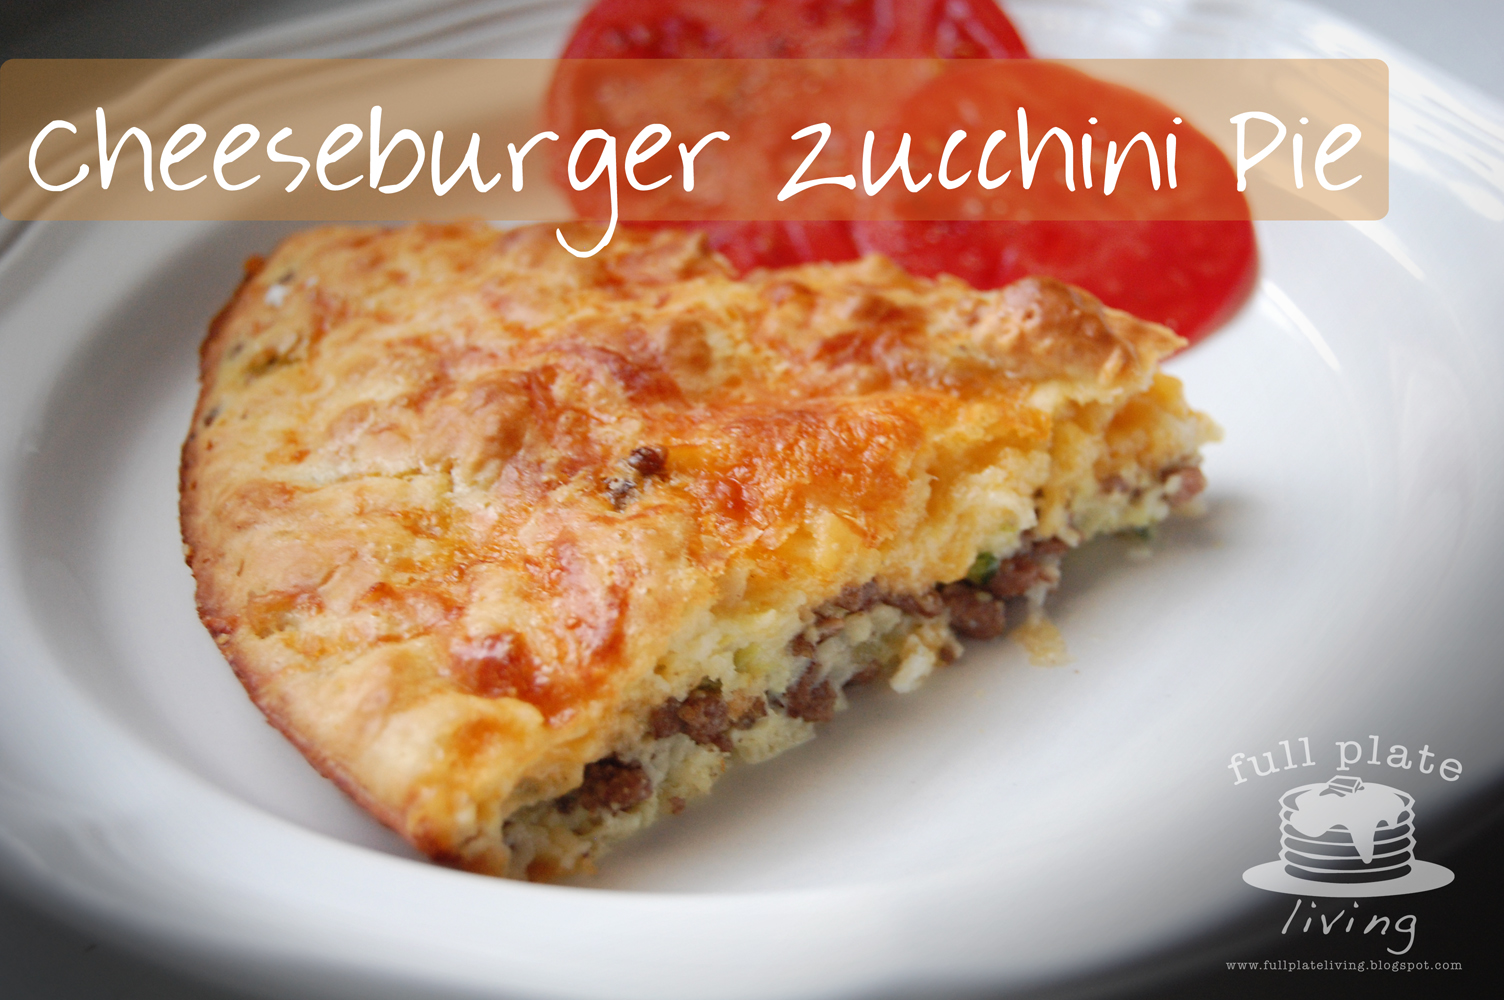 Cheeseburger Zucchini Pie